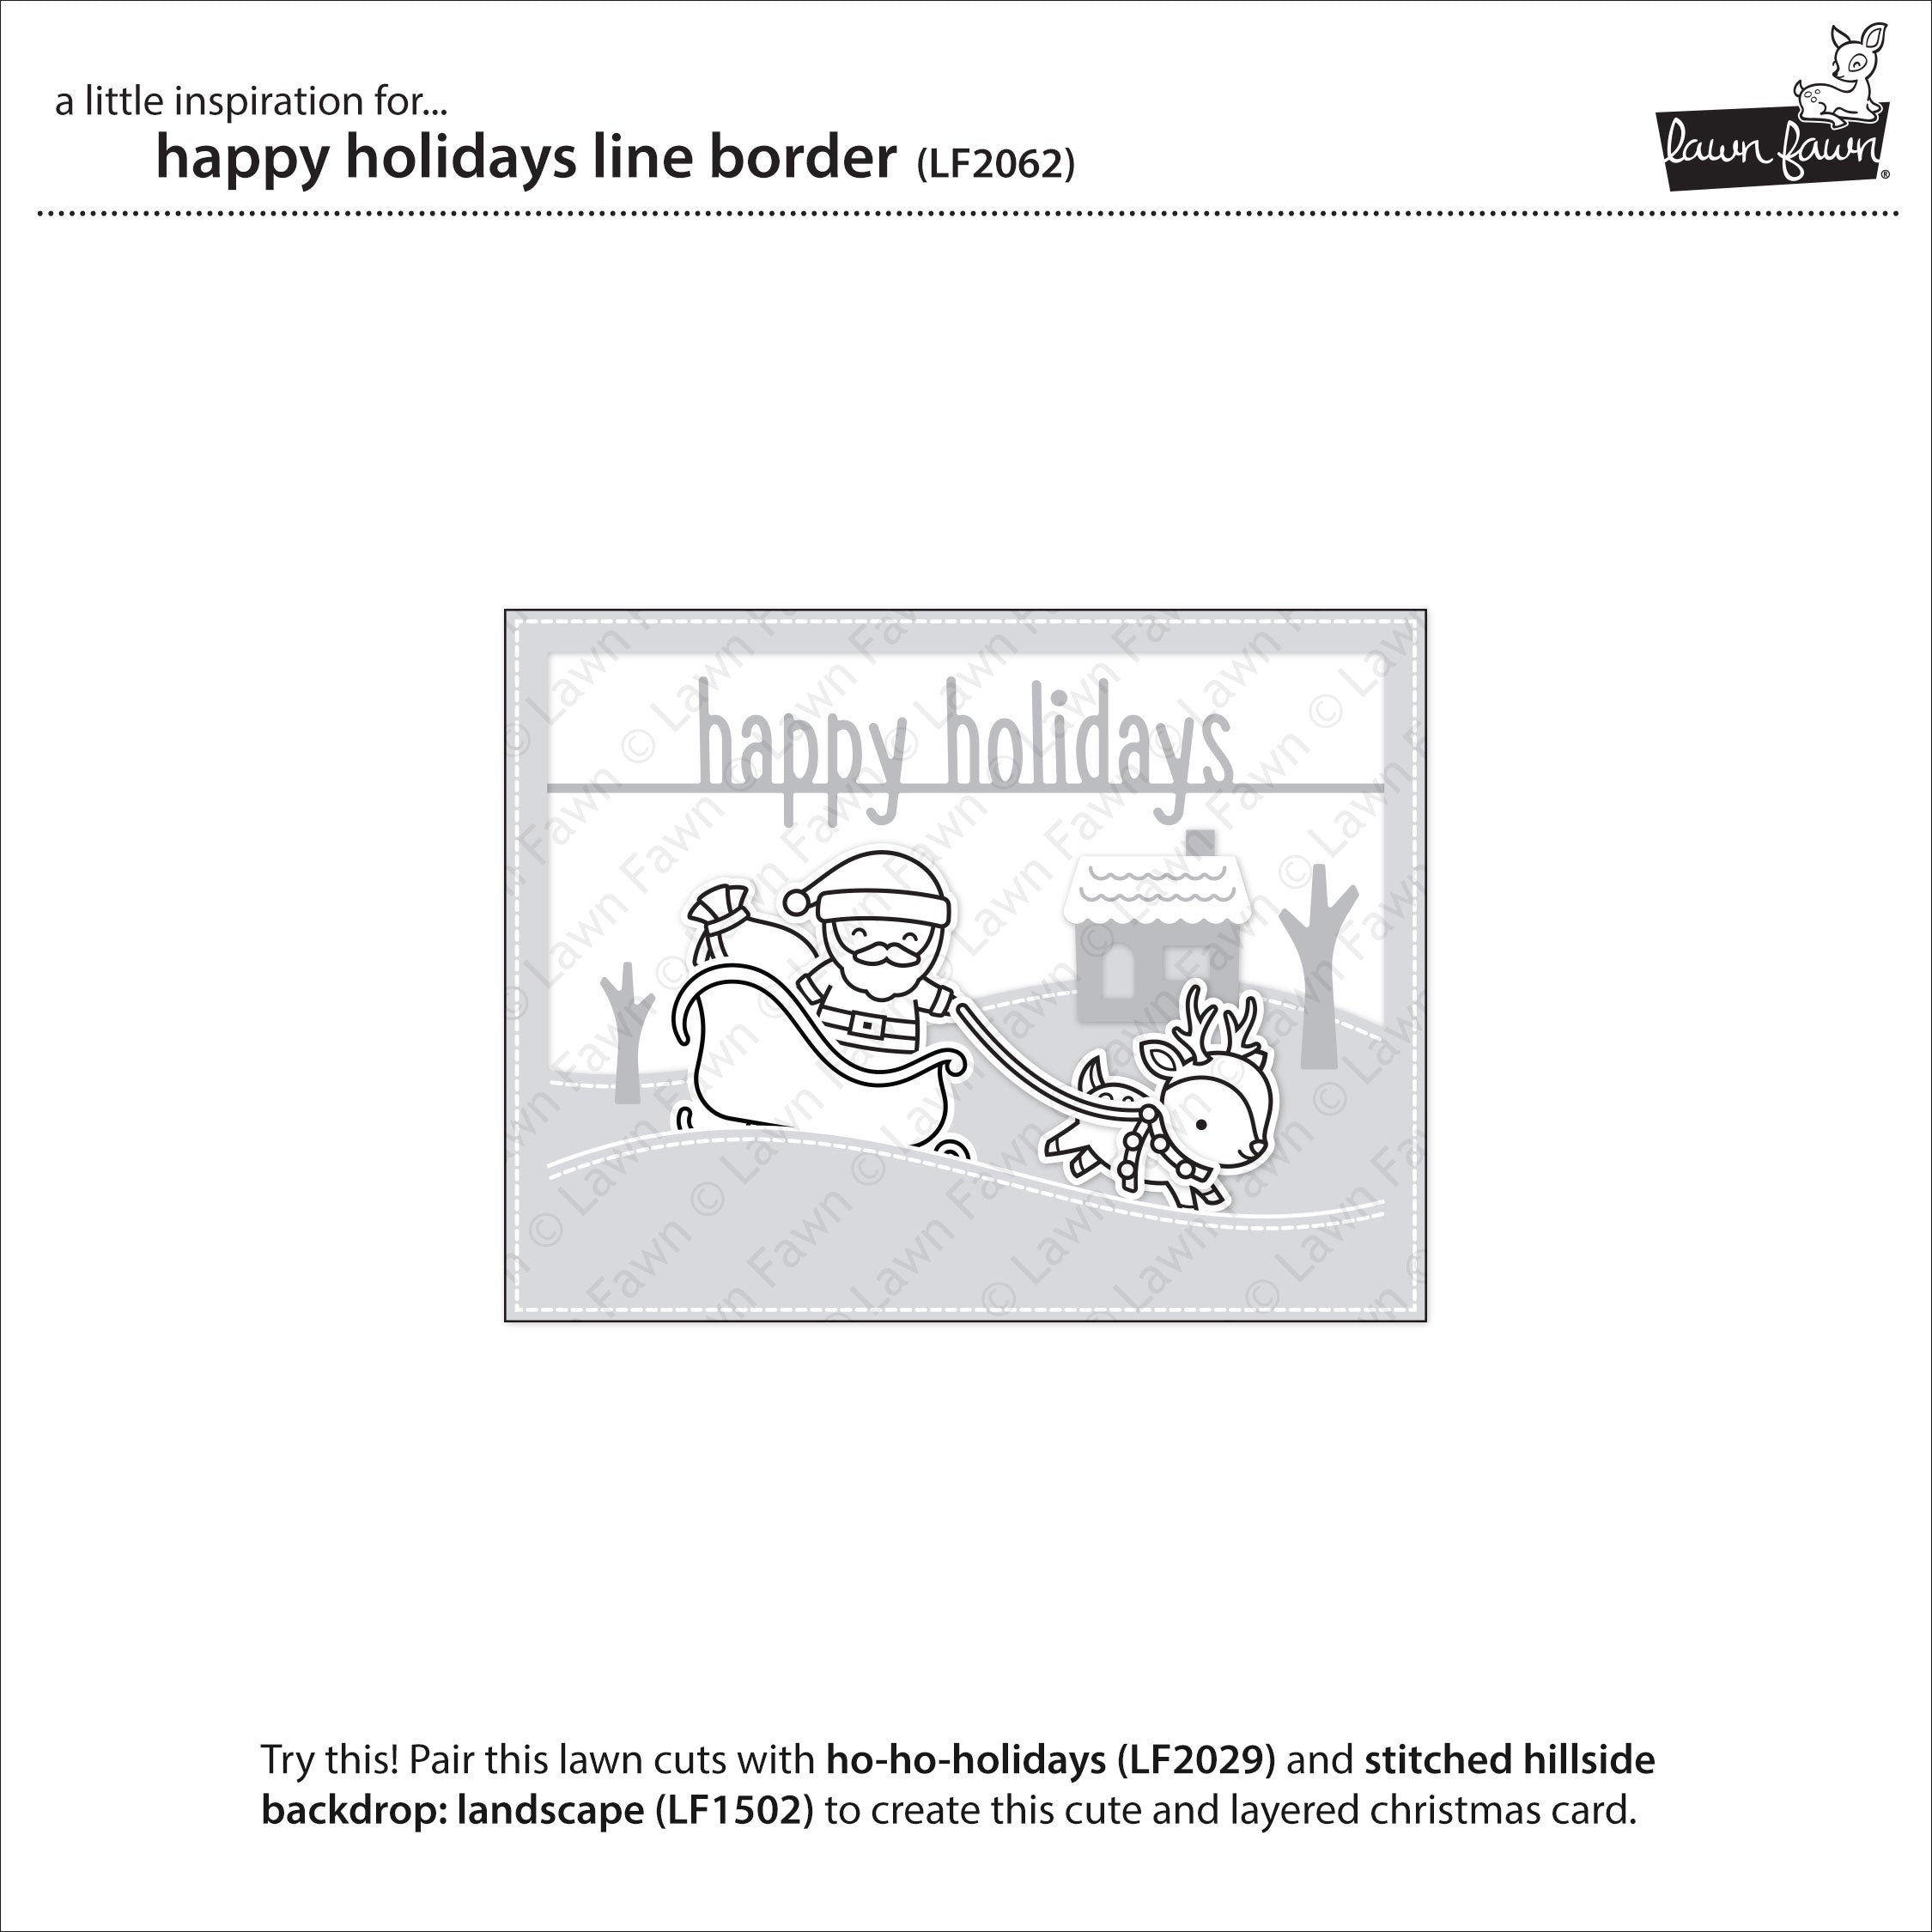 happy holidays line border